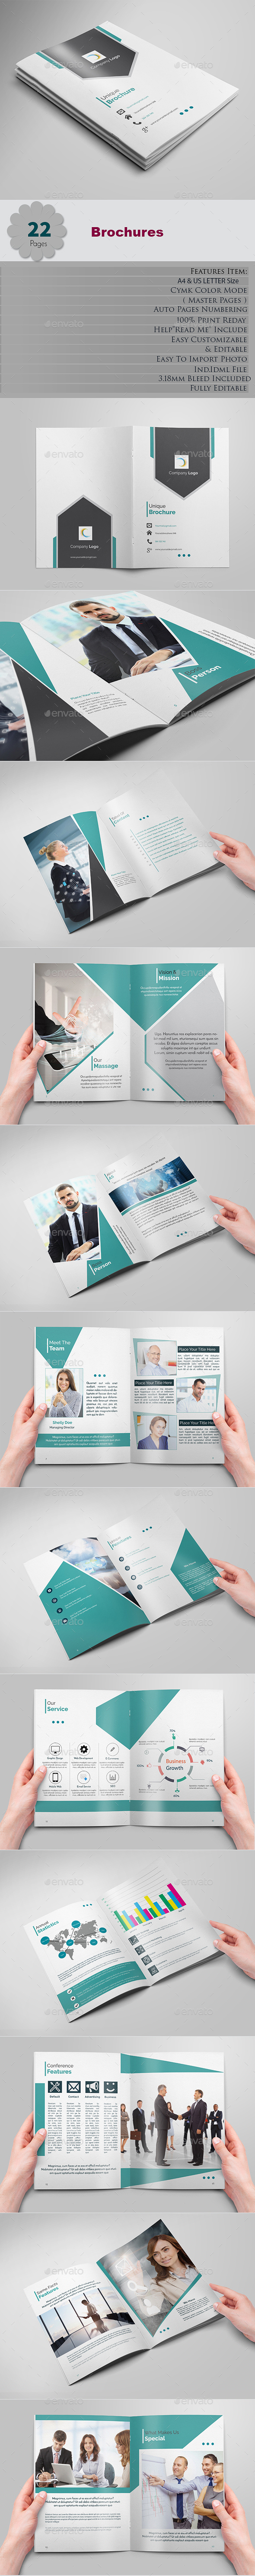 GraphicRiver Brochure 21109997